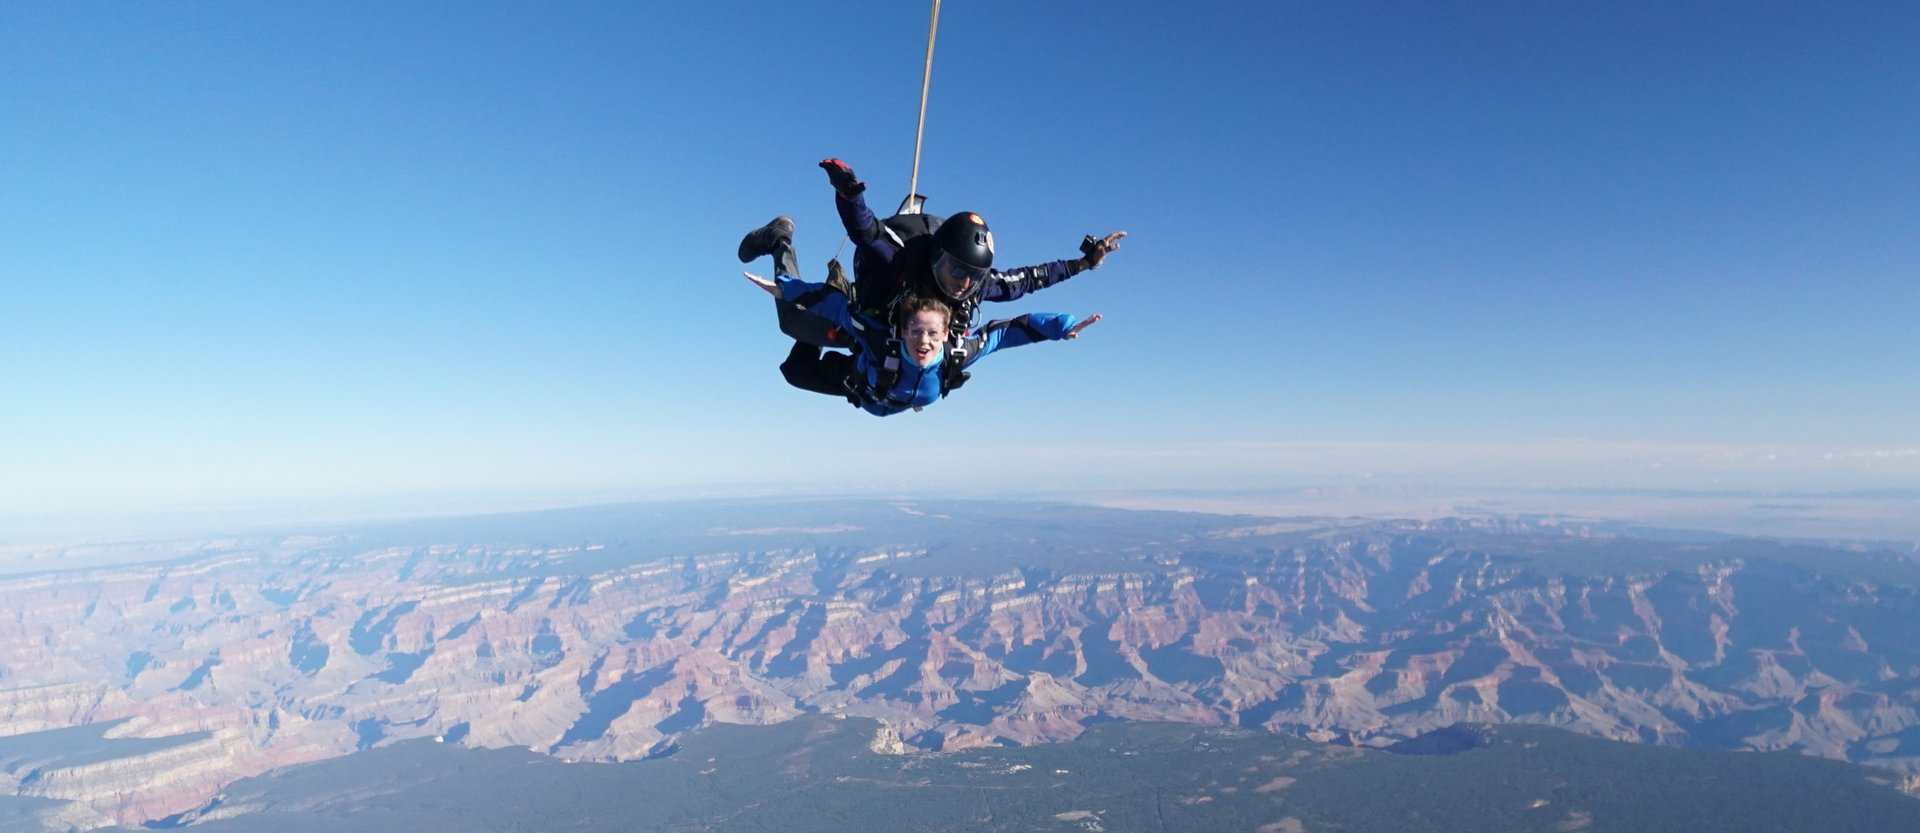 Skydiving in Grand Canyon 2019 - Best Time